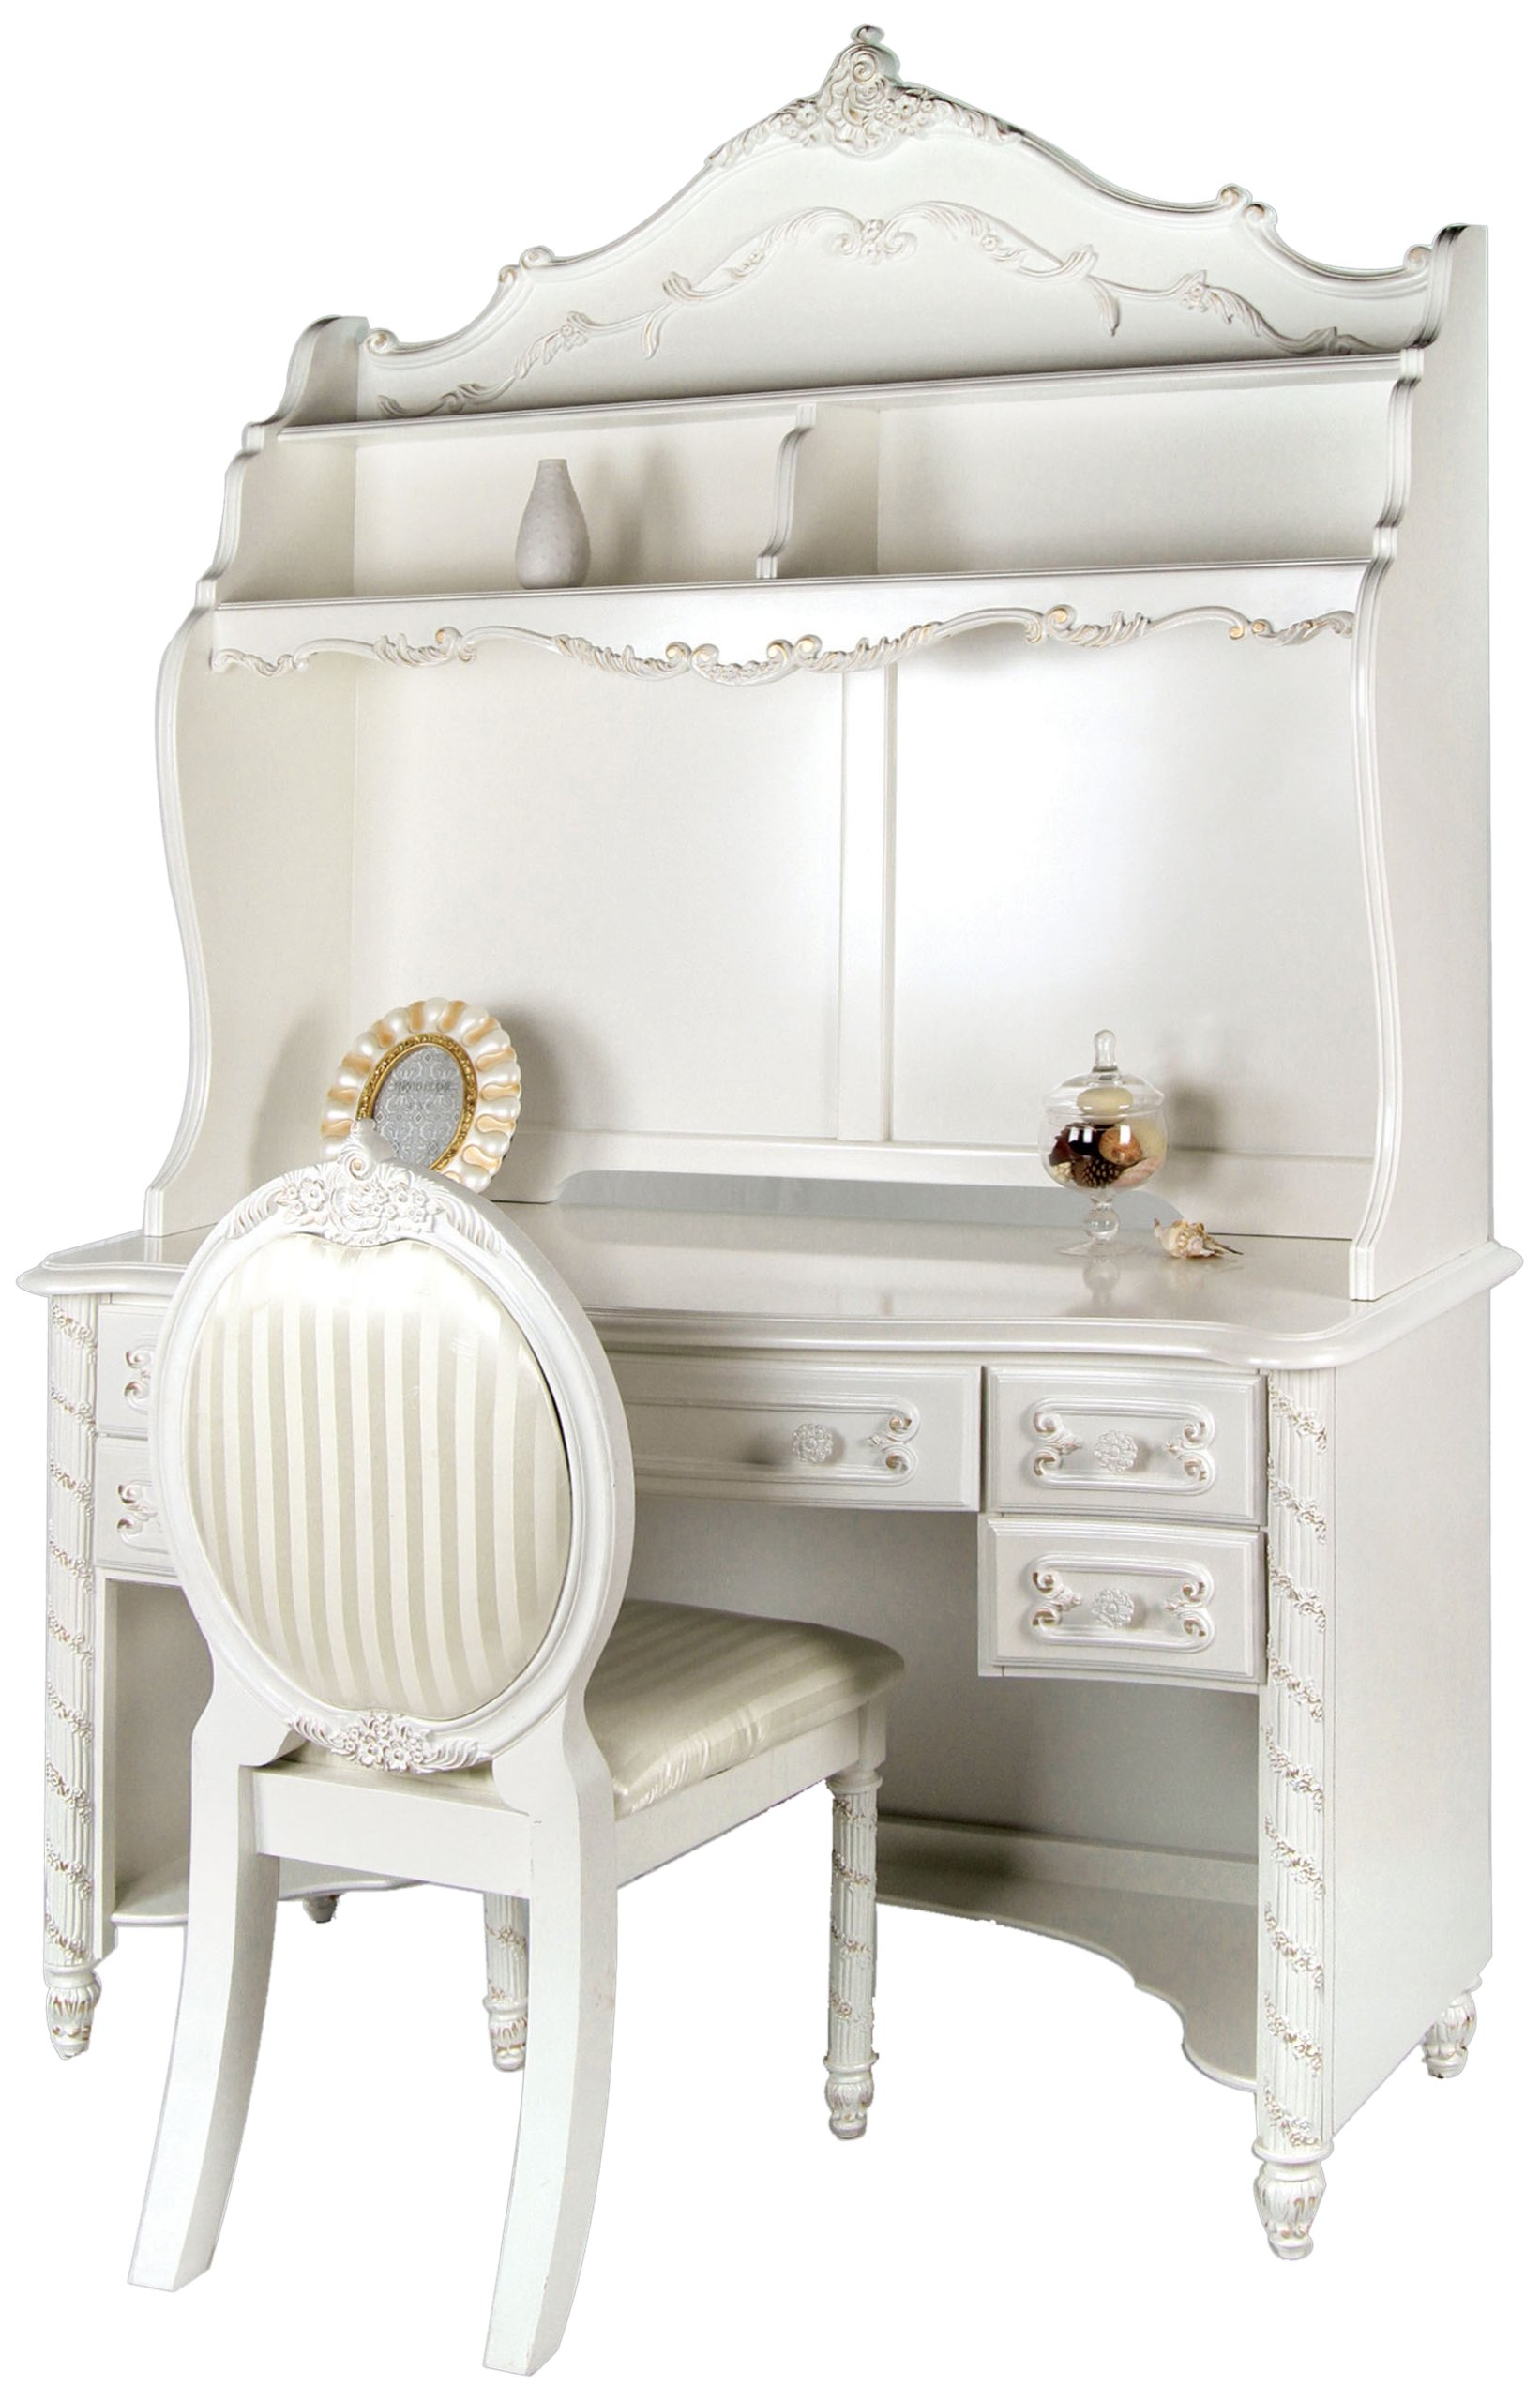 Furniture of America Nathalia Fairy Tale Style 3-Piece Desk Set, Pearl White Finish by Furniture of America